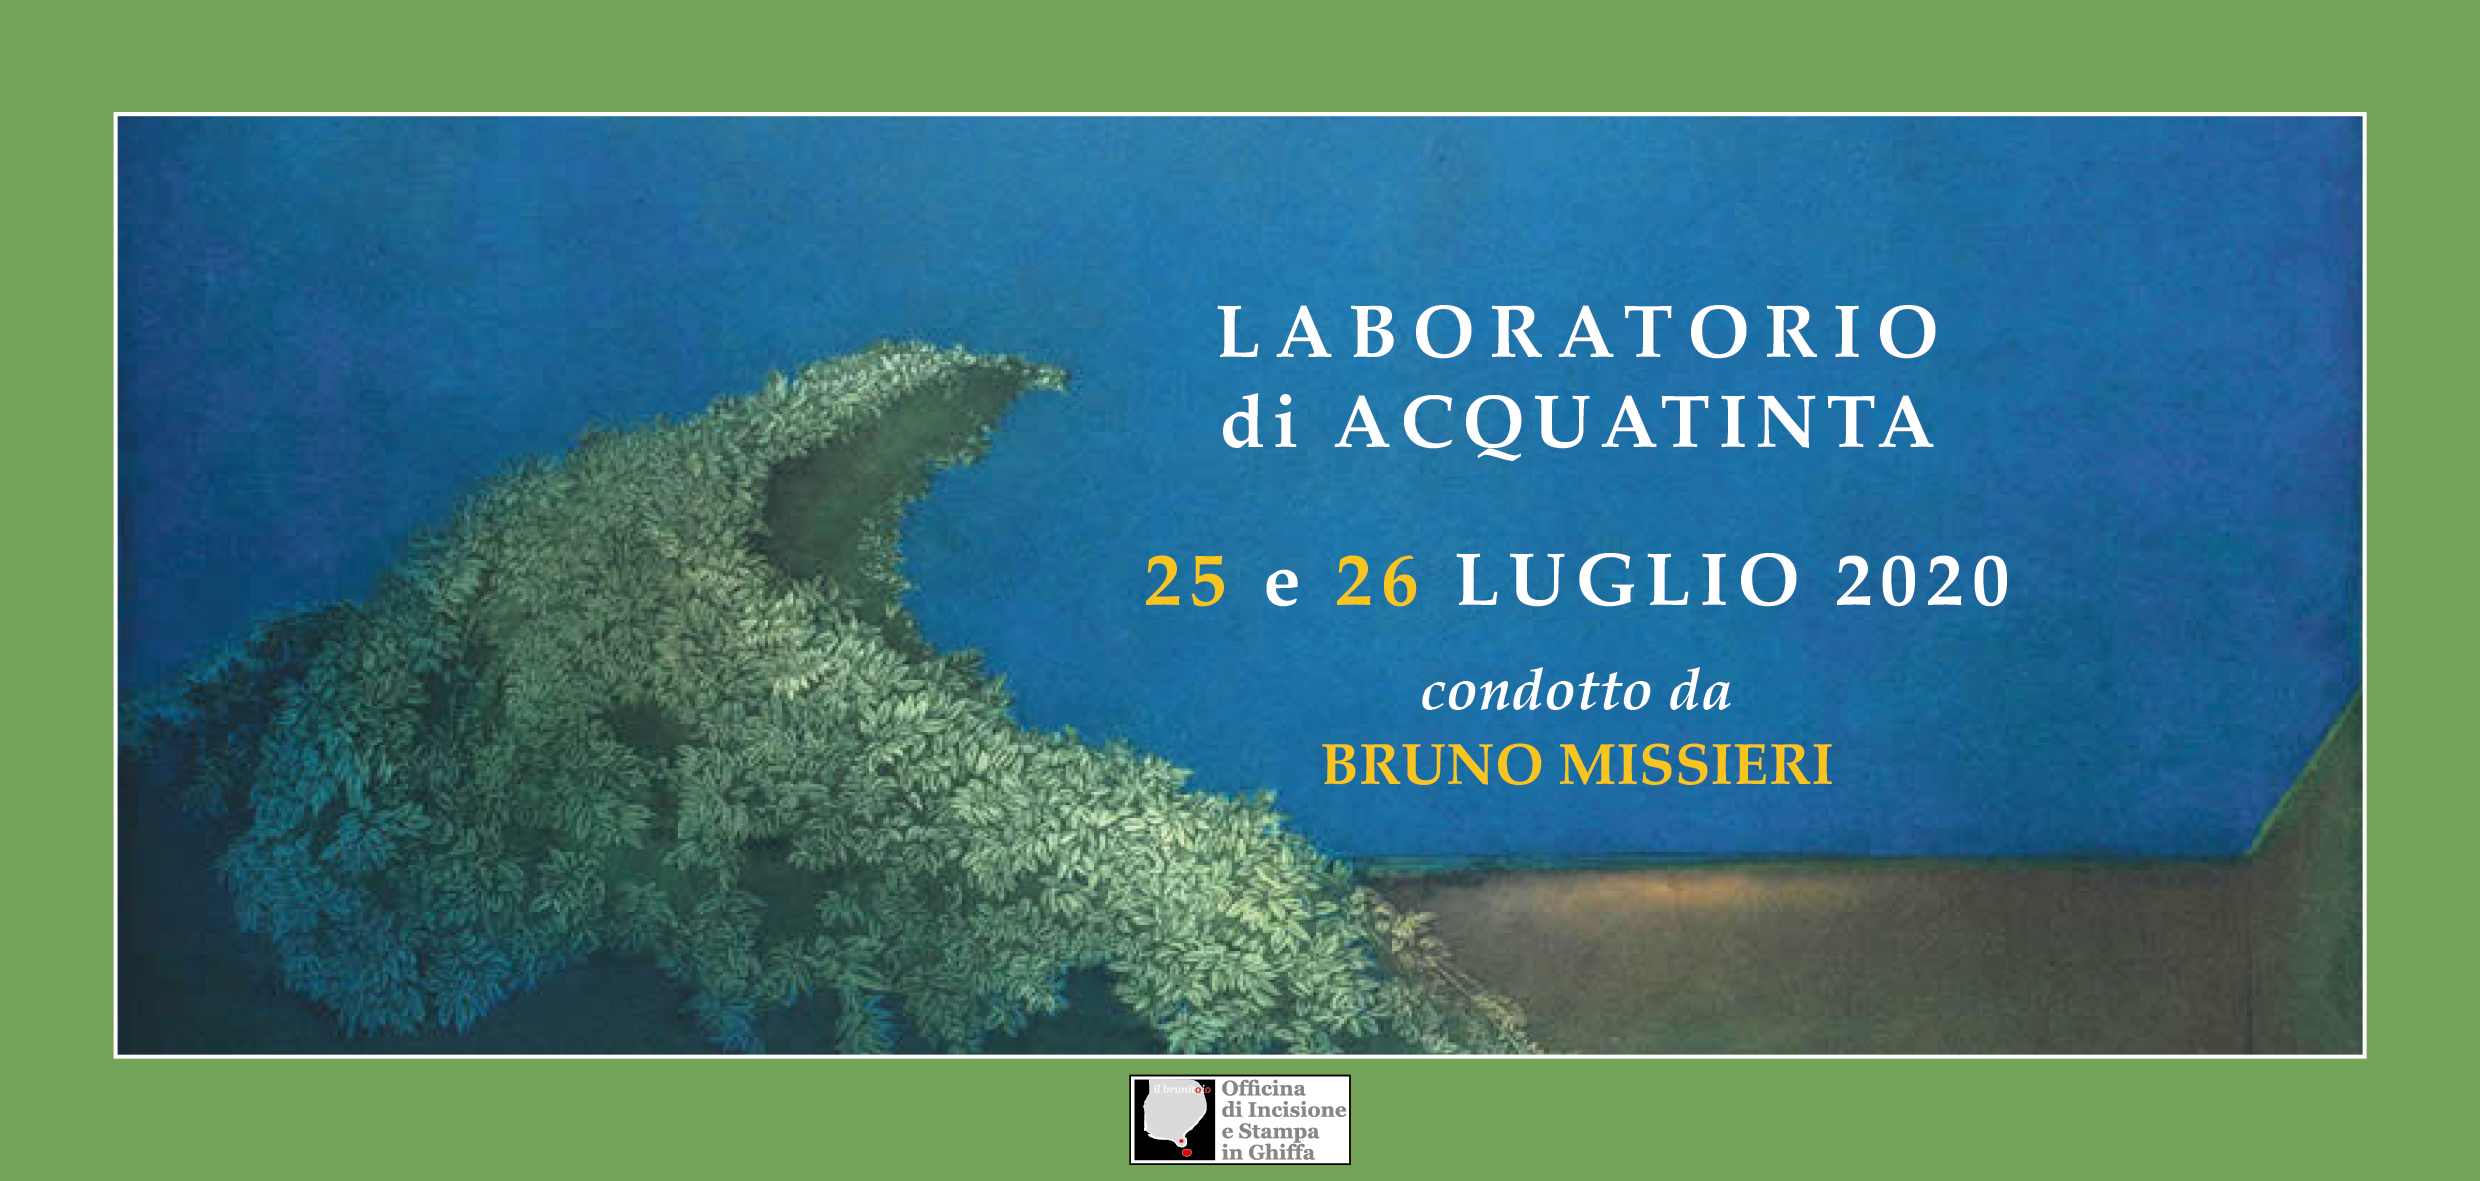 Laboratorio di Acquatinta condotto da Bruno Missieri